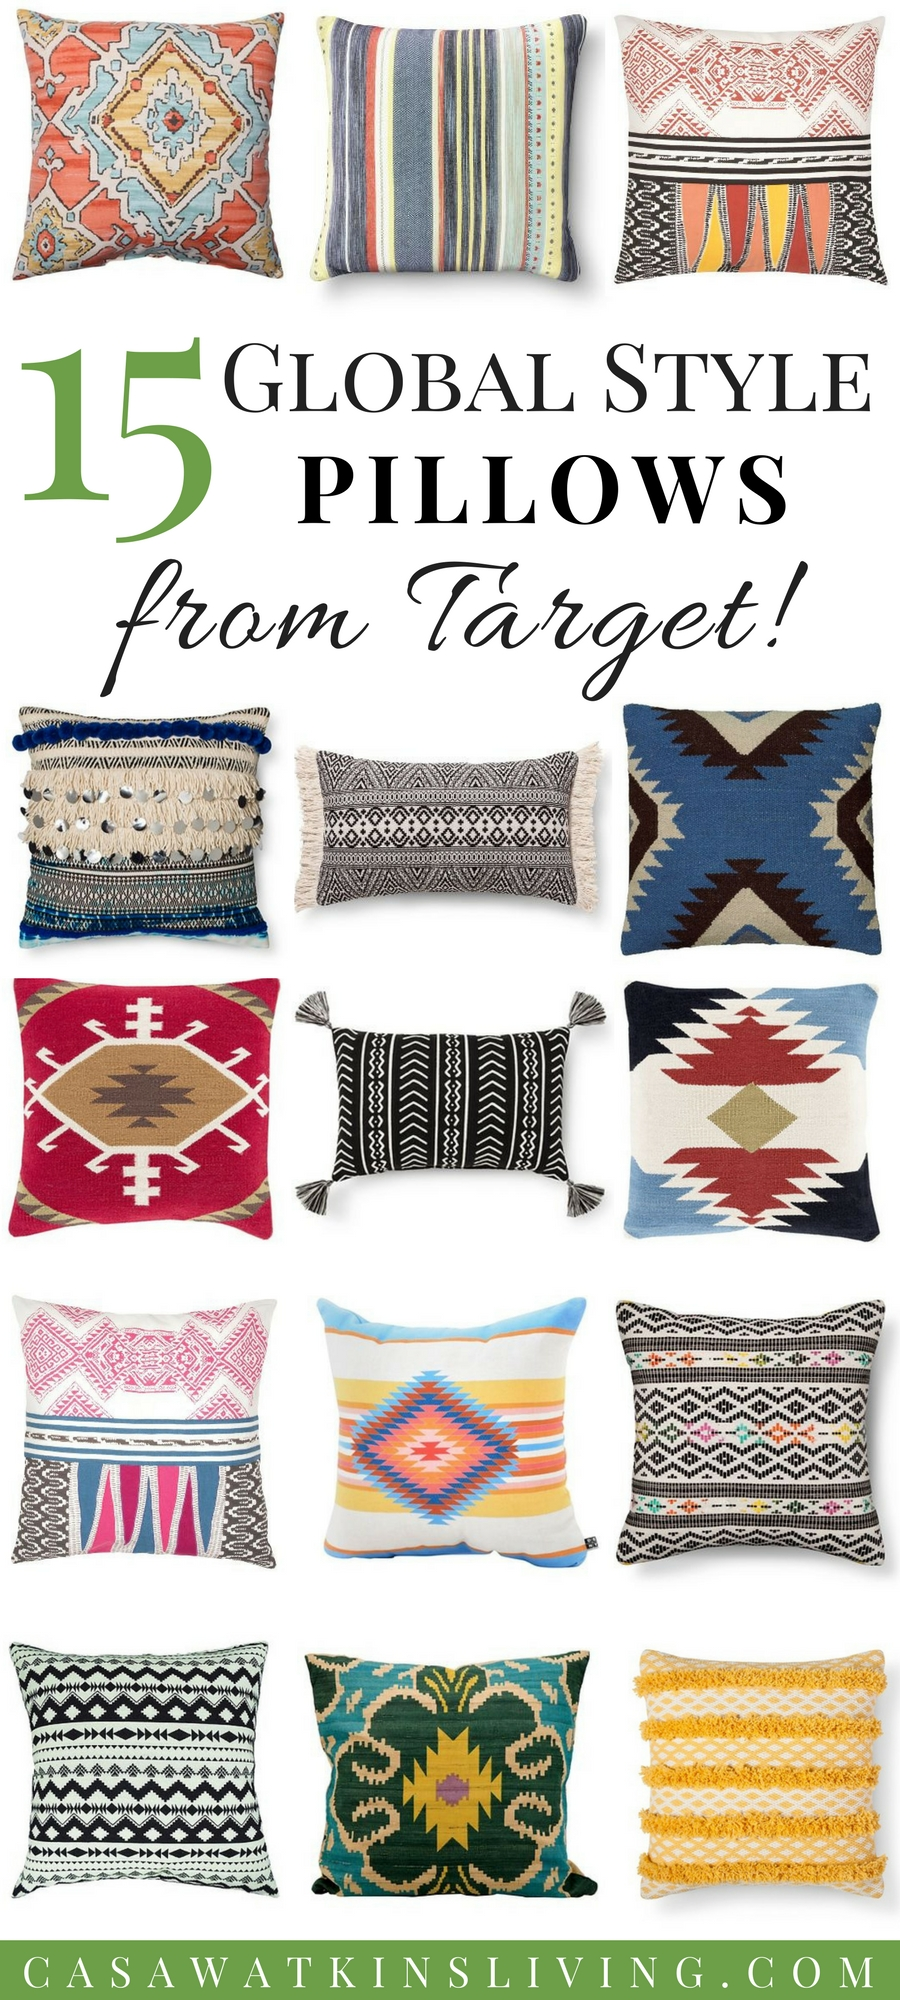 global style pillows from Target!